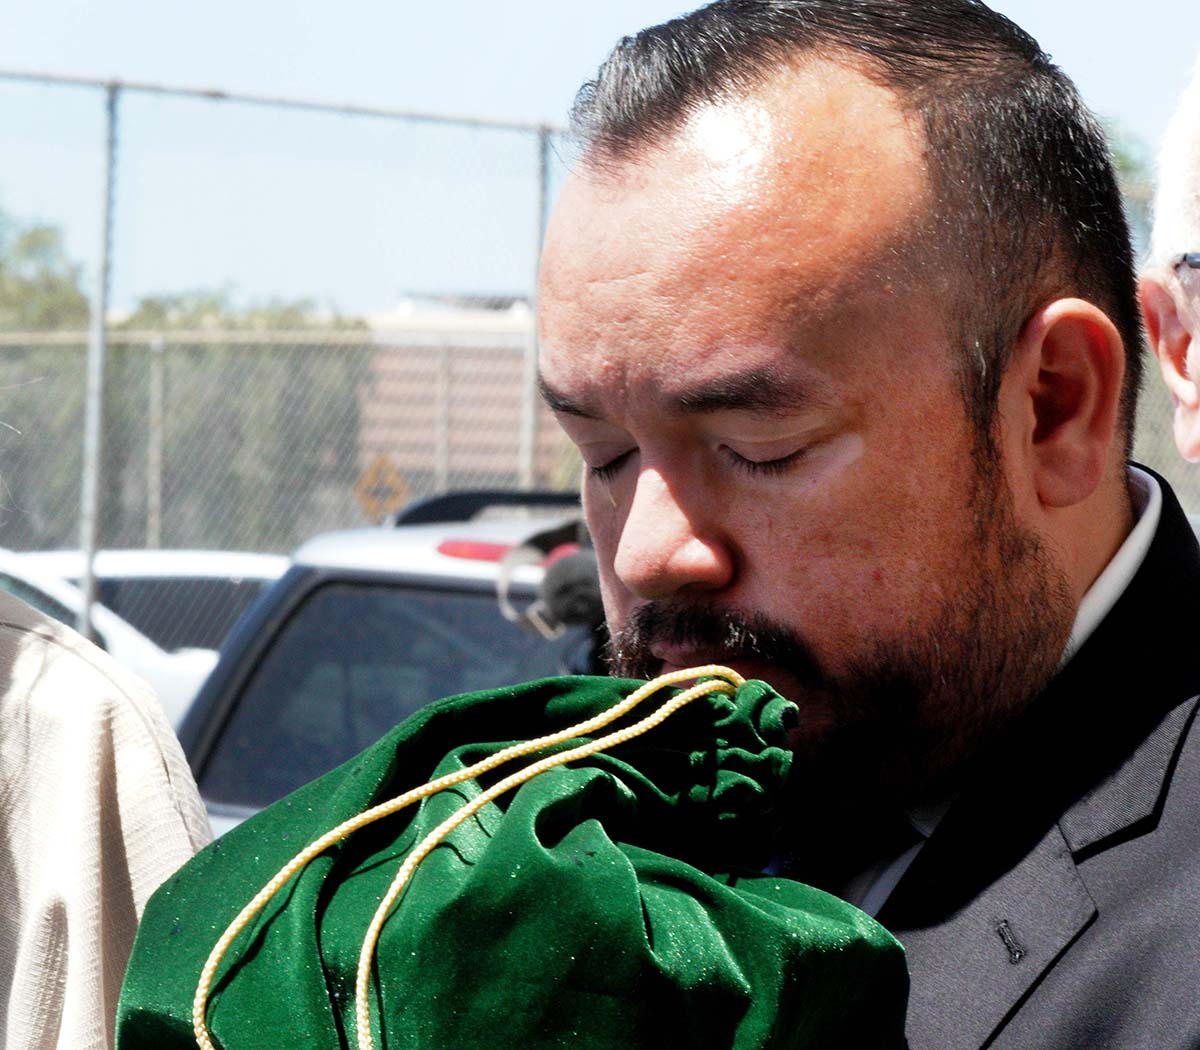 Jose Gonzalez, personal assistant to Fr. Joe Carroll, clutches his remains in tears after the funeral.